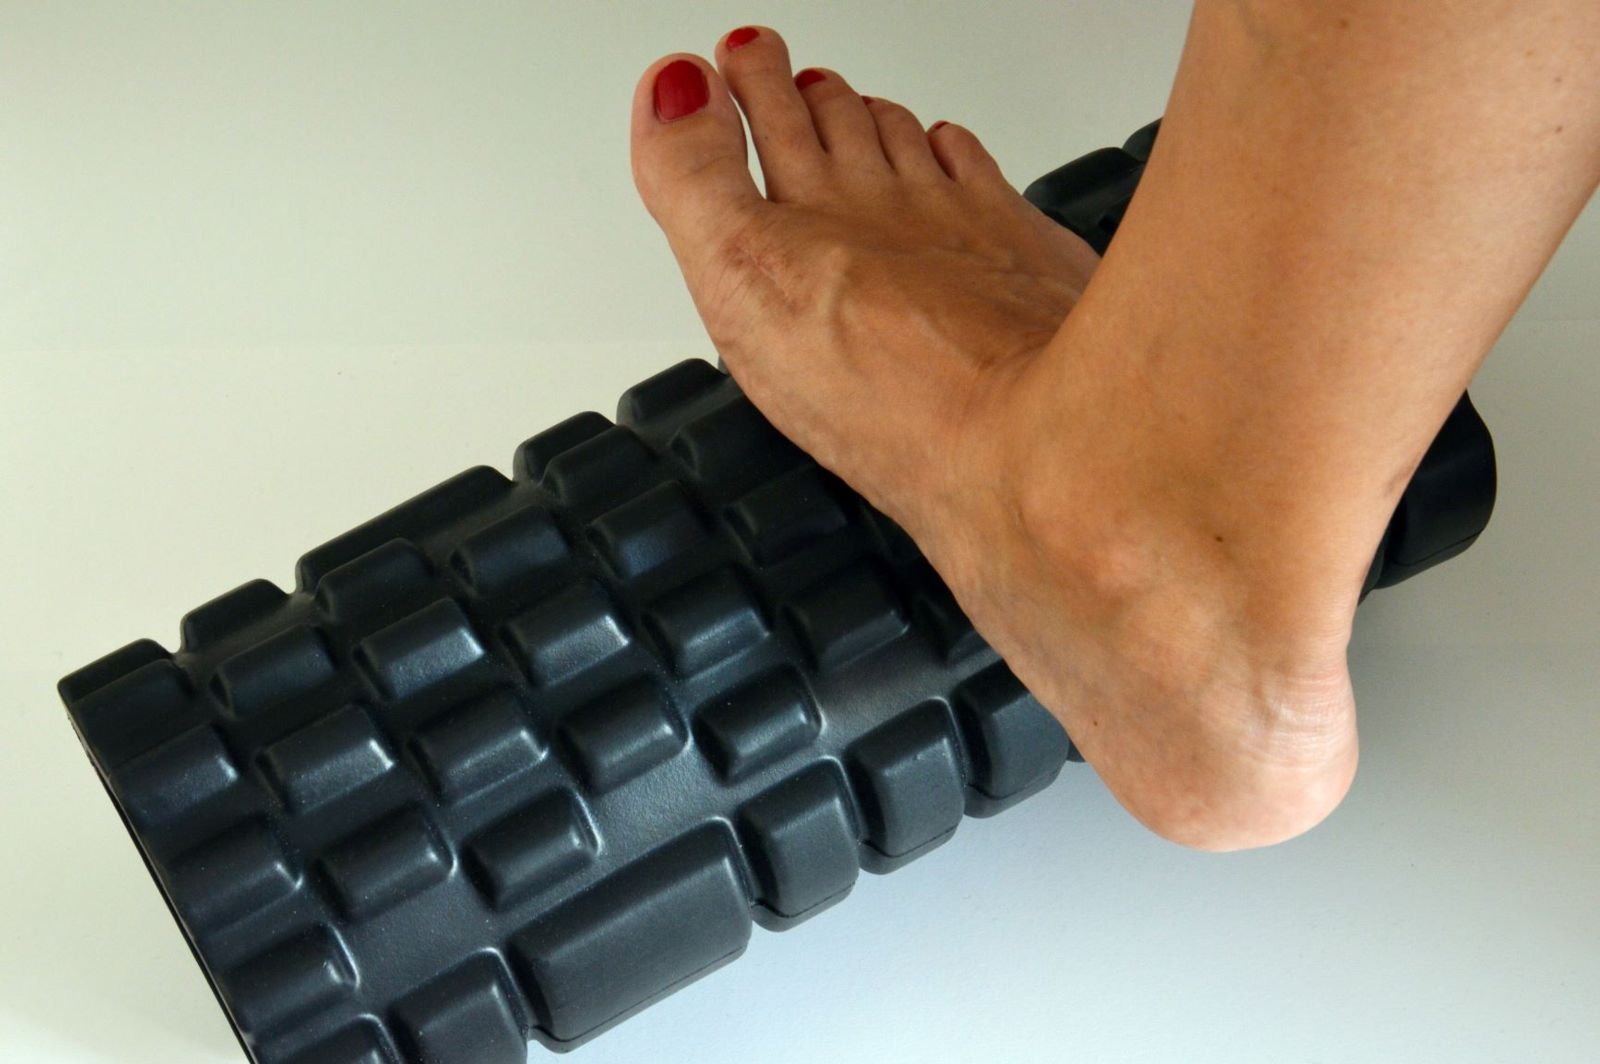 When you first start foam rolling your feet, gentle pressure is best to avoid injury